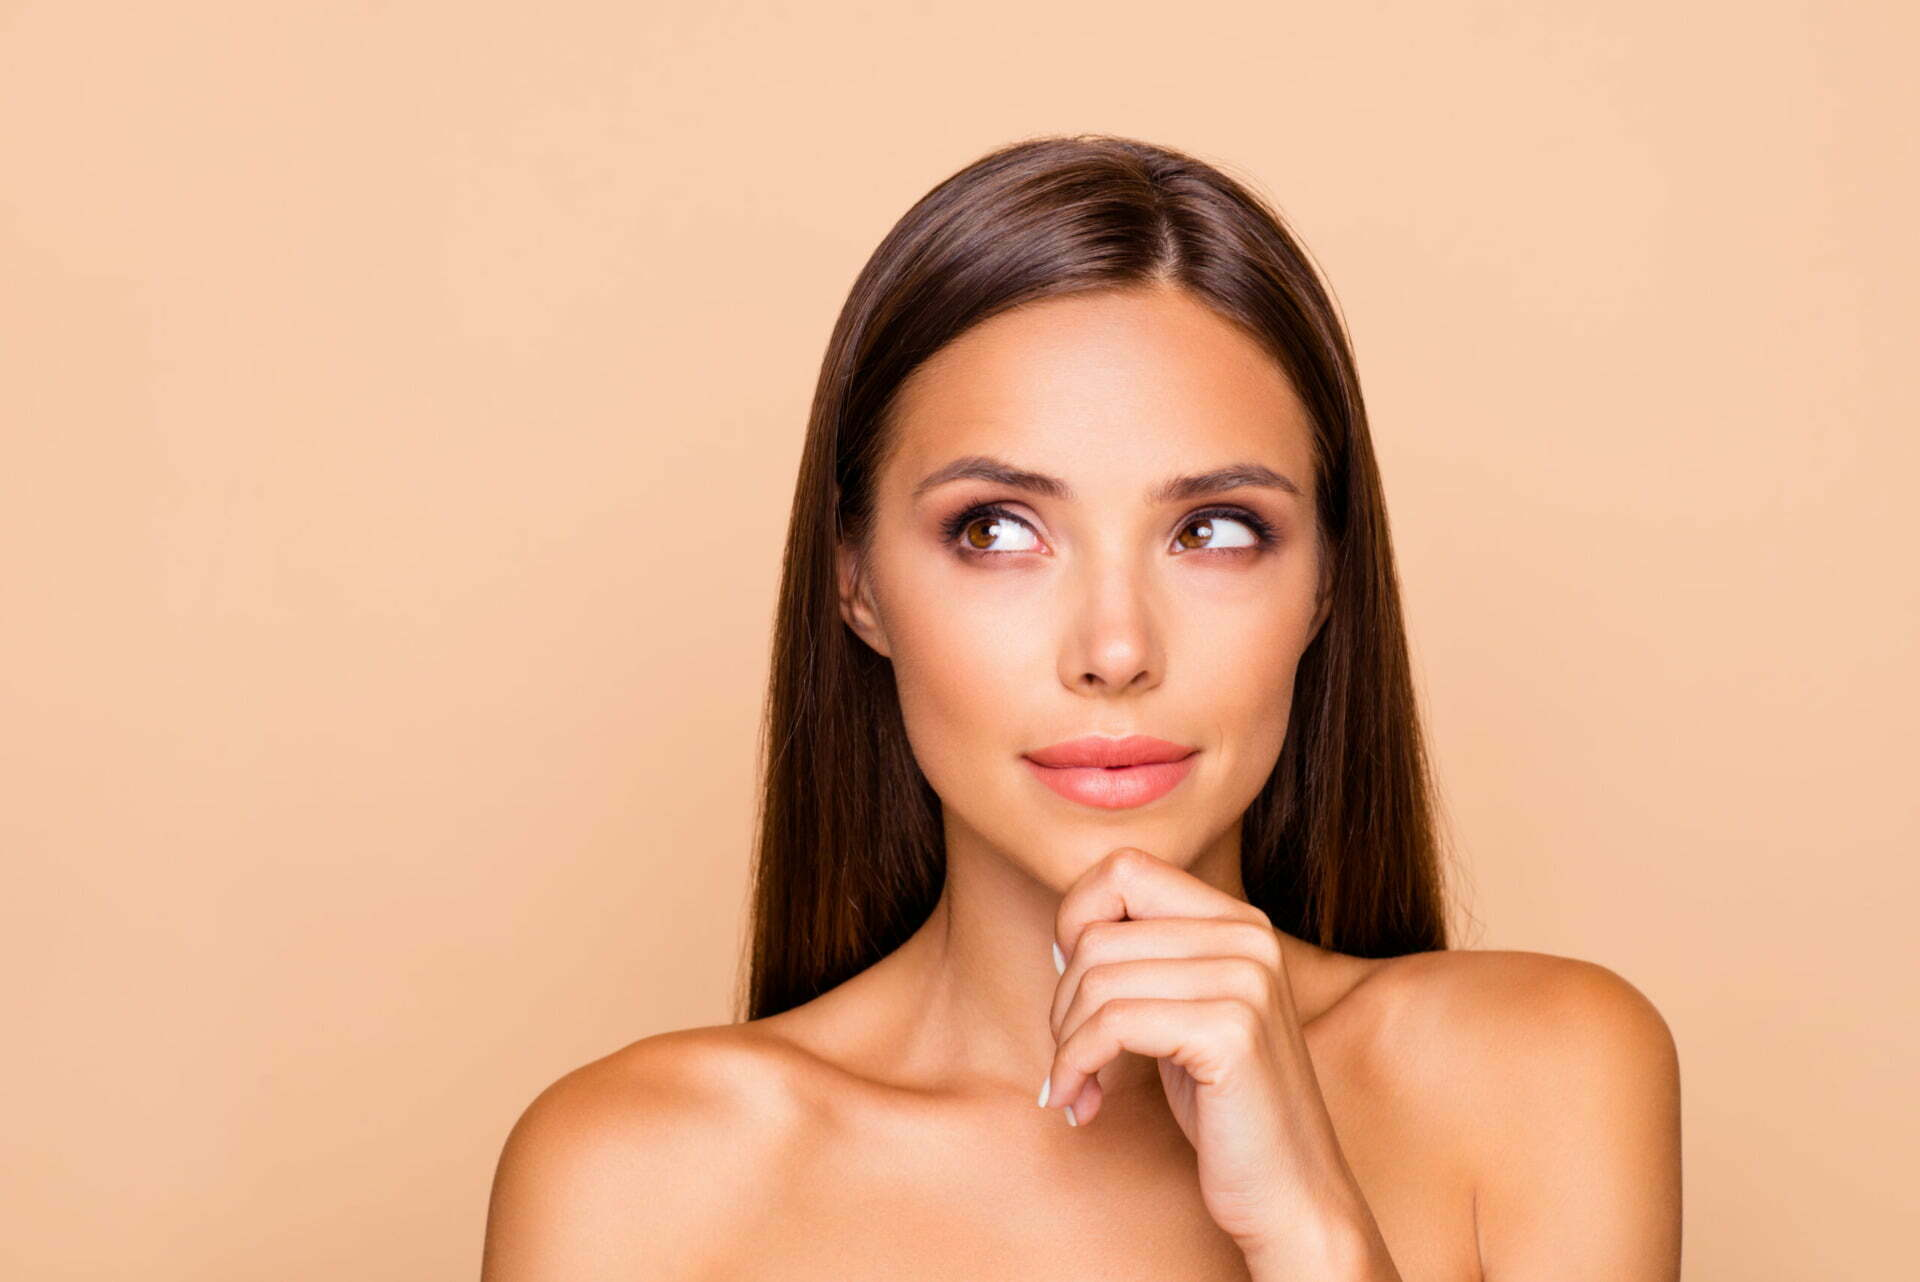 Dr. Hess Explains What to Look for in a Plastic Surgeon's Before and After Gallery